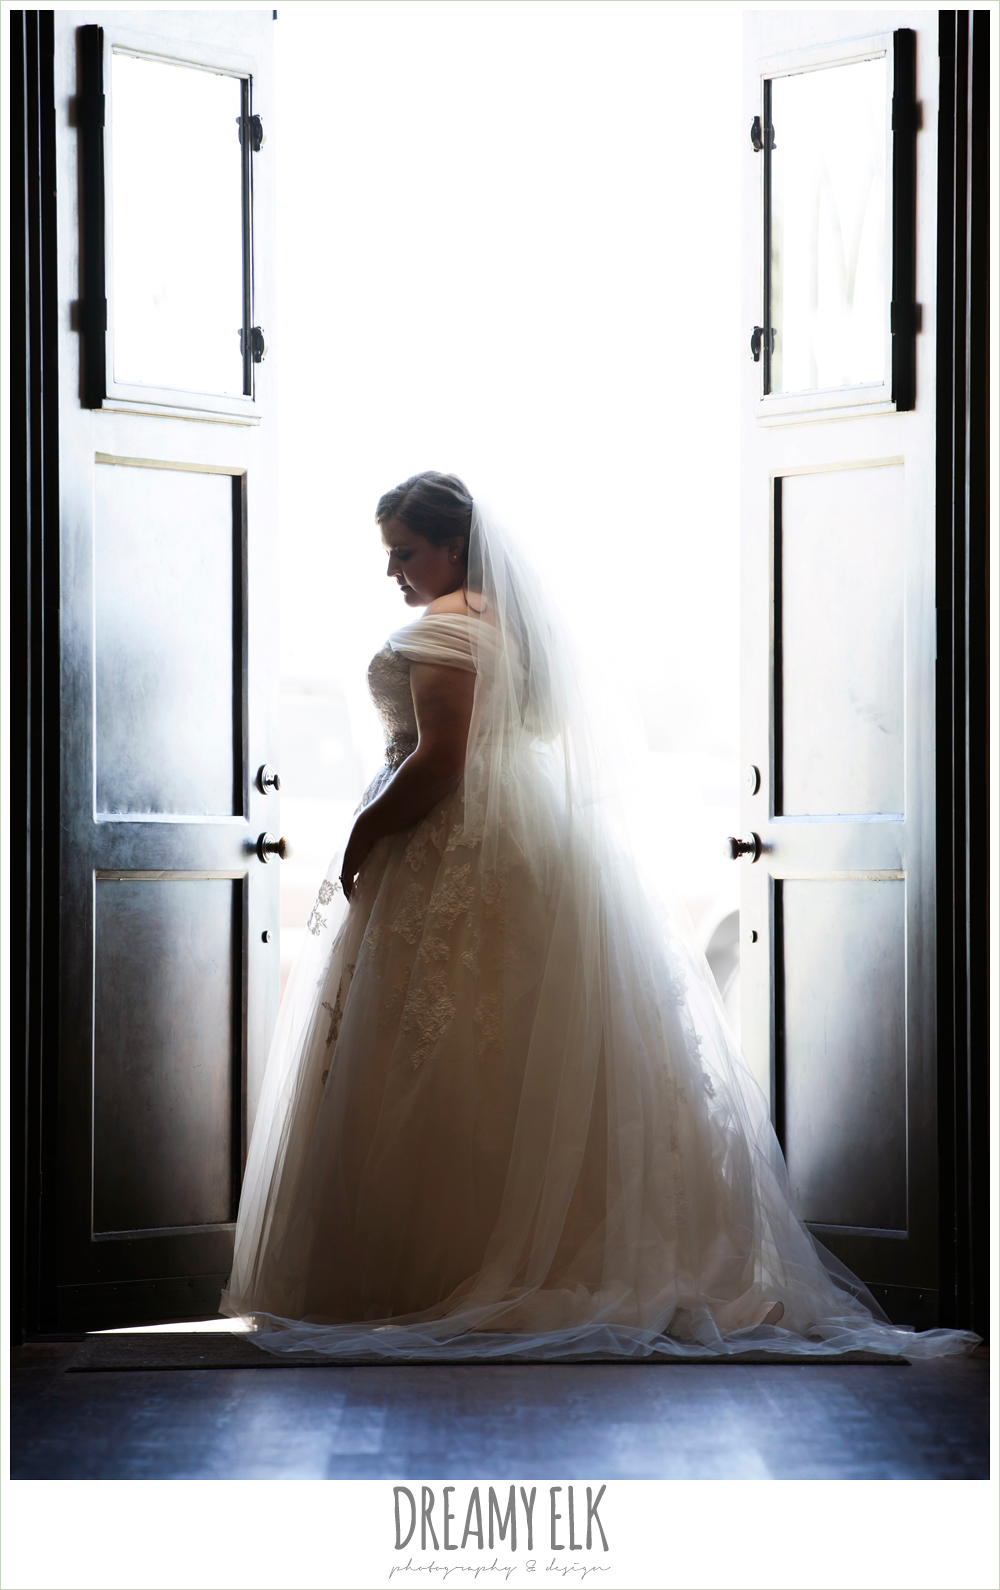 bridal photo in a doorway, belle inspired wedding dress, cathedral length wedding veil {dreamy elk photography and design}